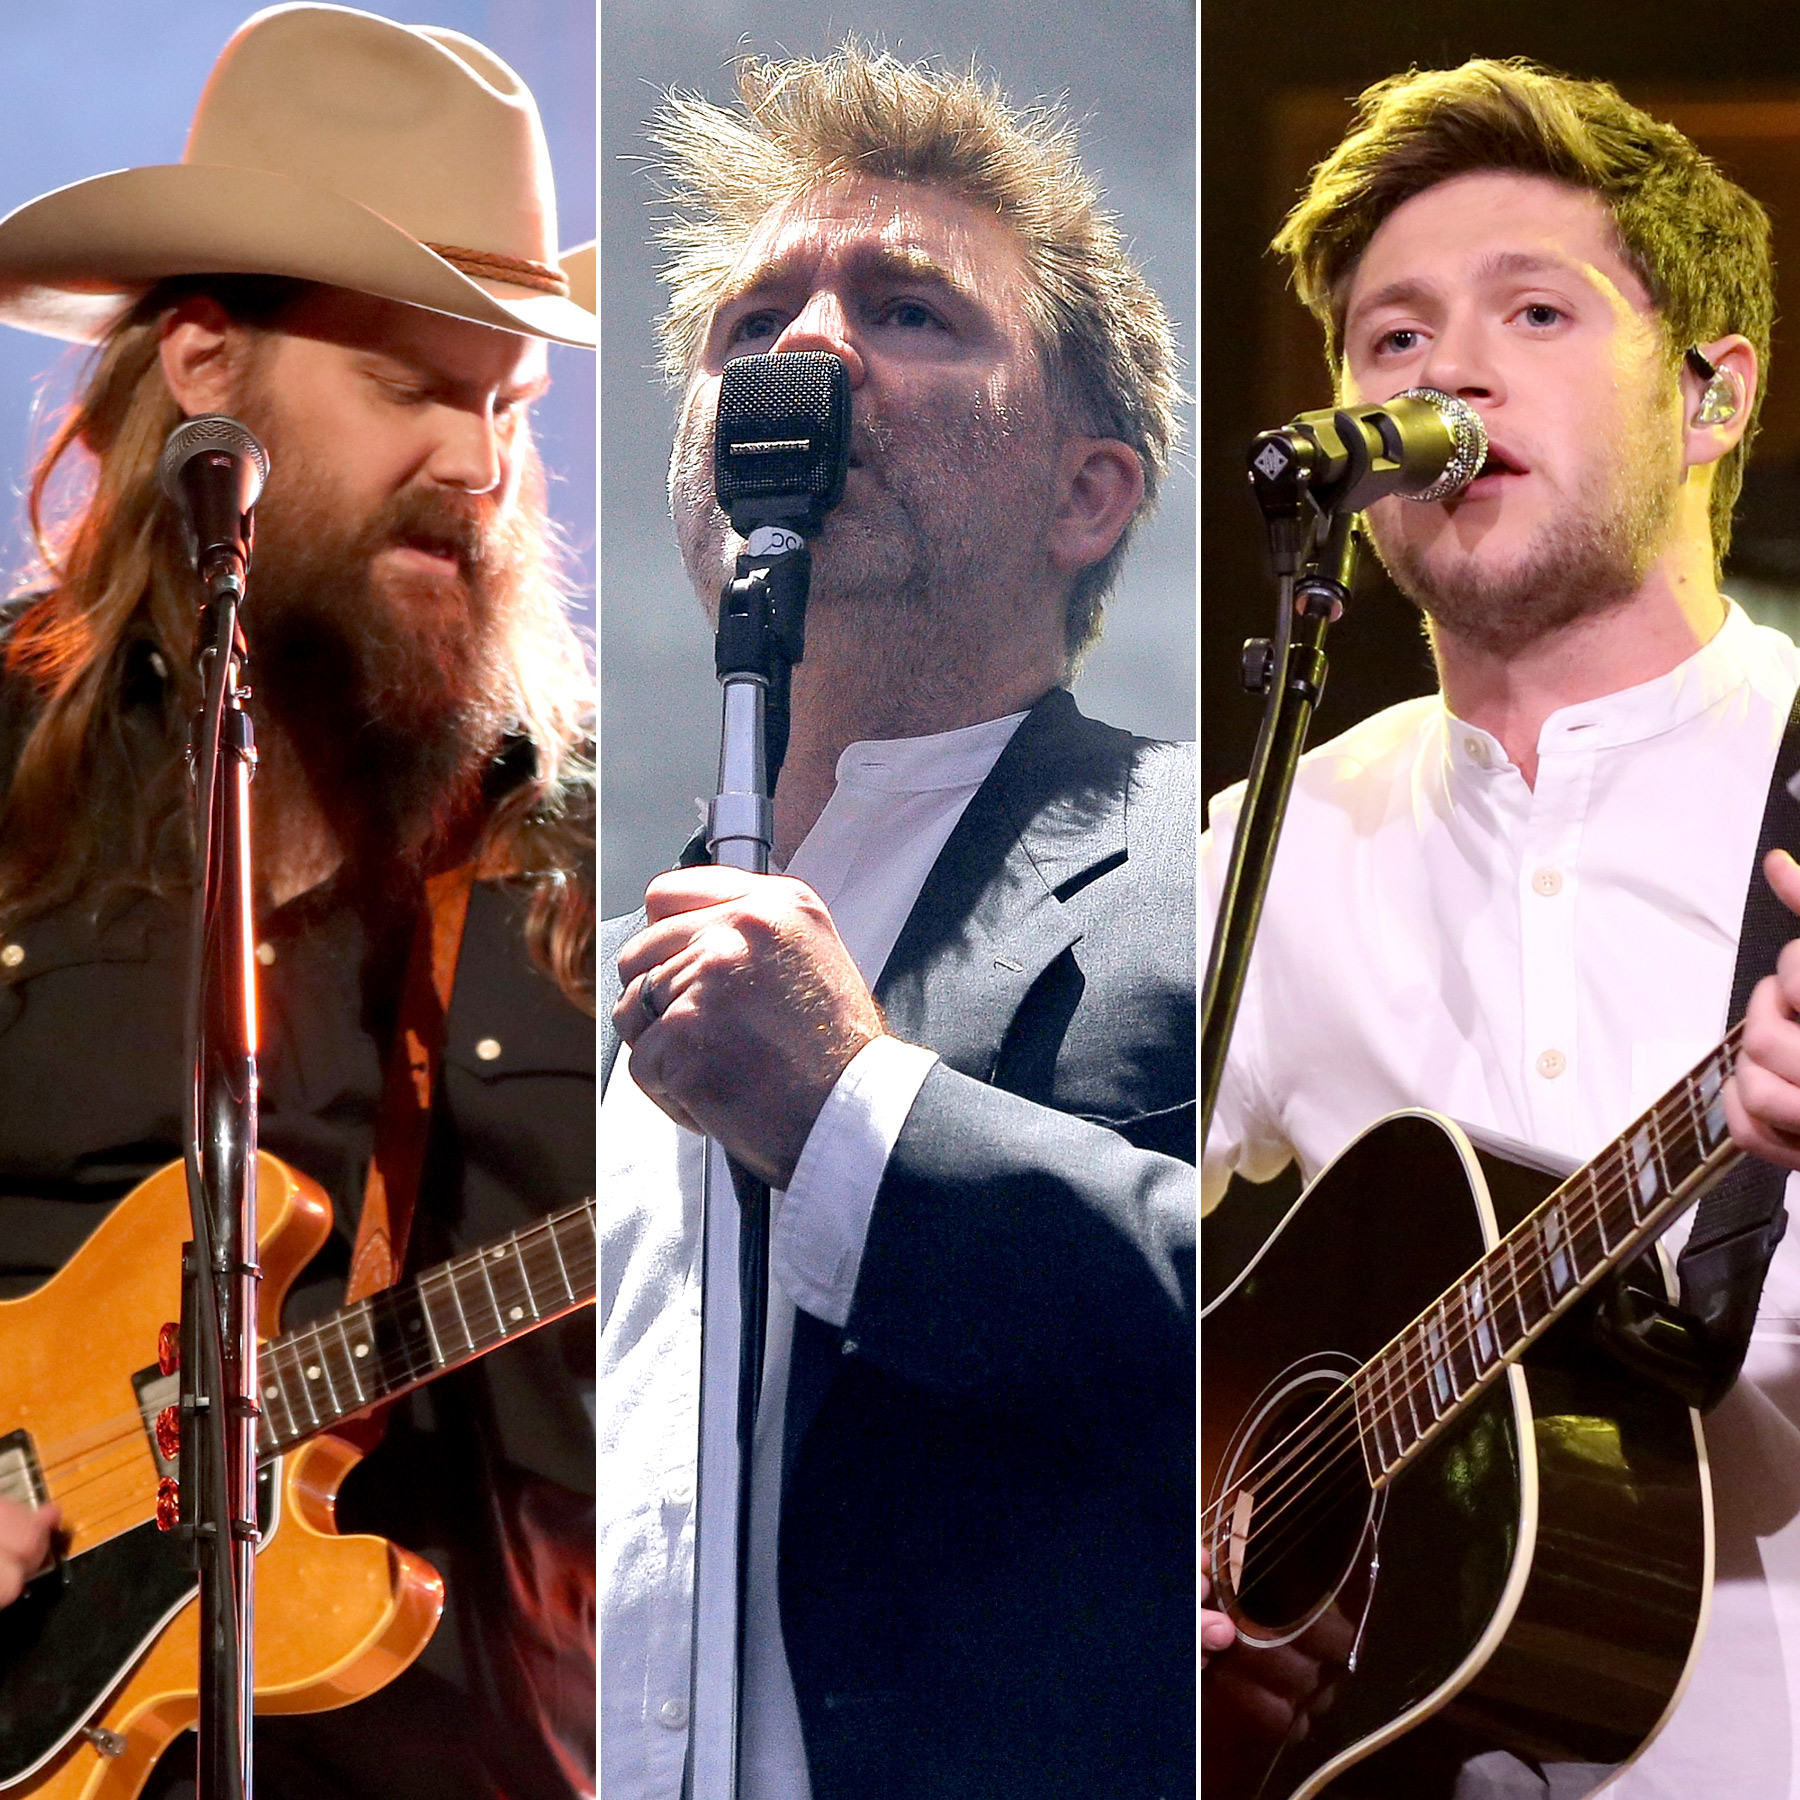 Chris Stapleton, LCD Soundsystem and Niall Horan